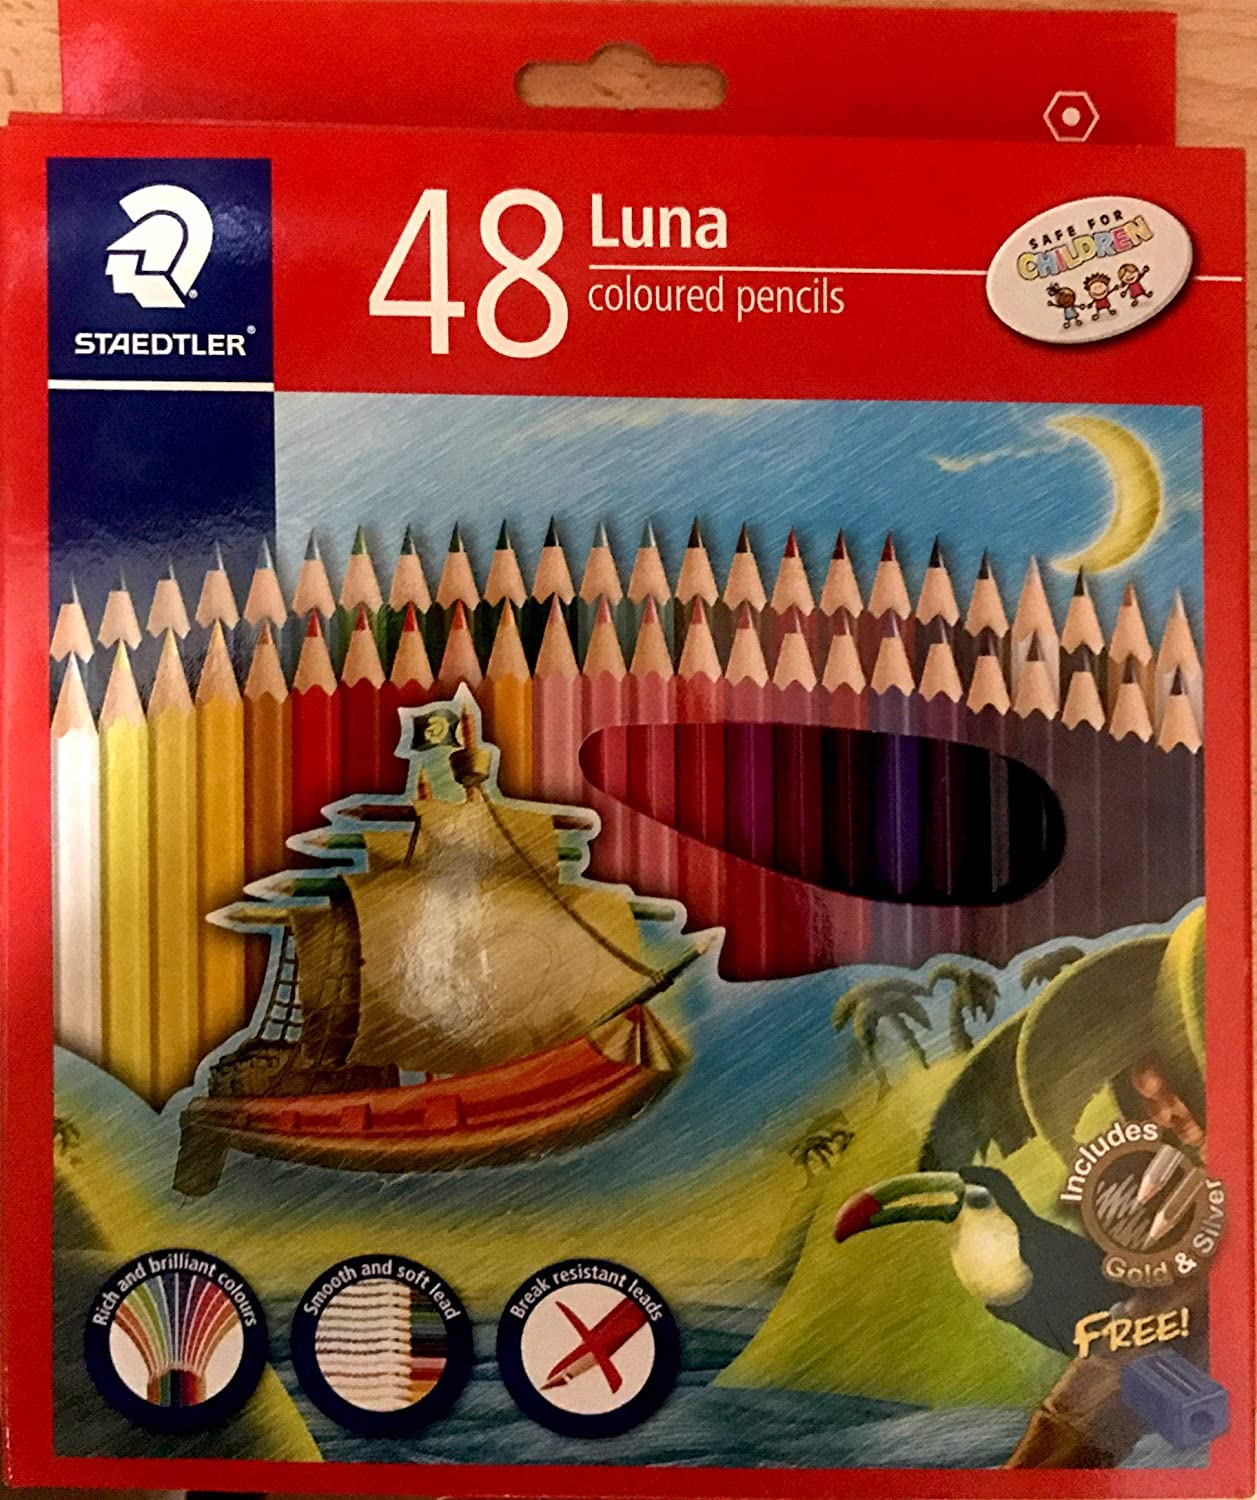 Staedtler Luna Coloured Pencil Set - Pack of 48